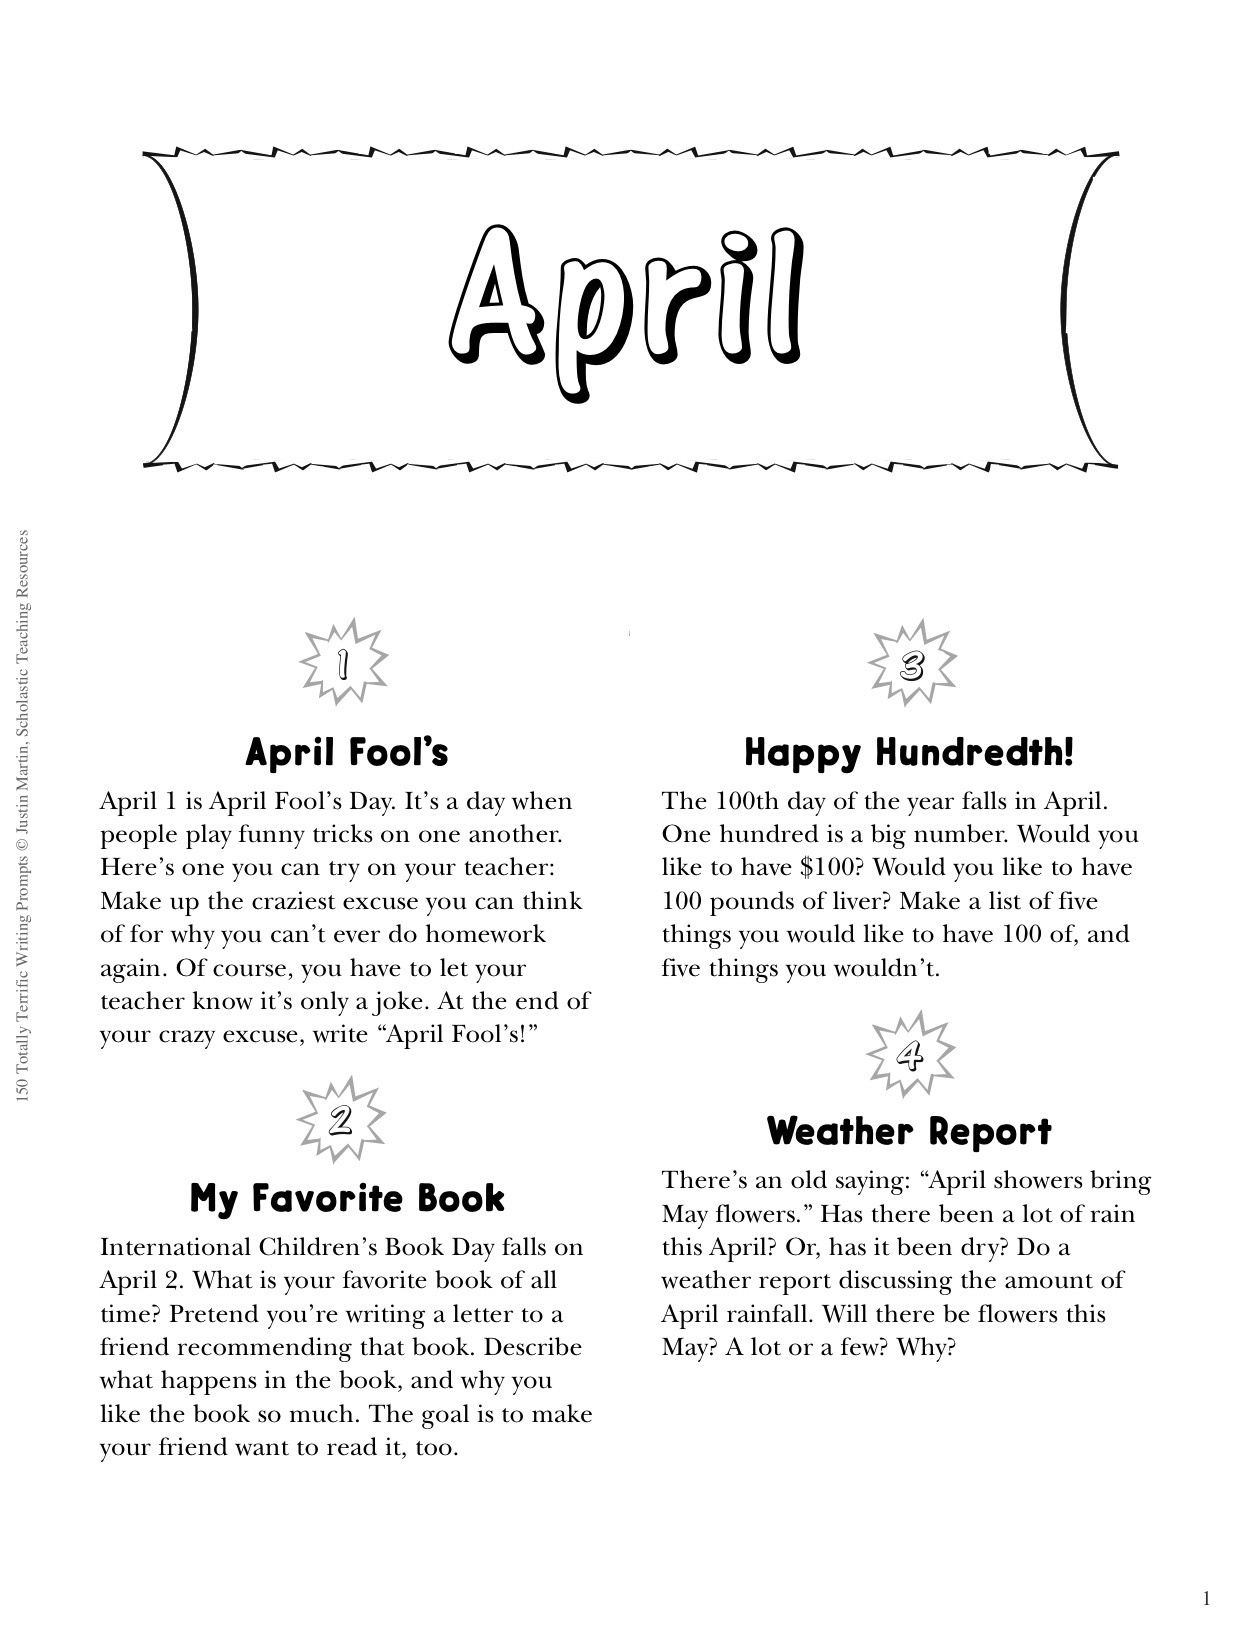 Free Printable Prompts To Spring Writing To Life   Scholastic - Get Out Of Homework Free Pass Printable